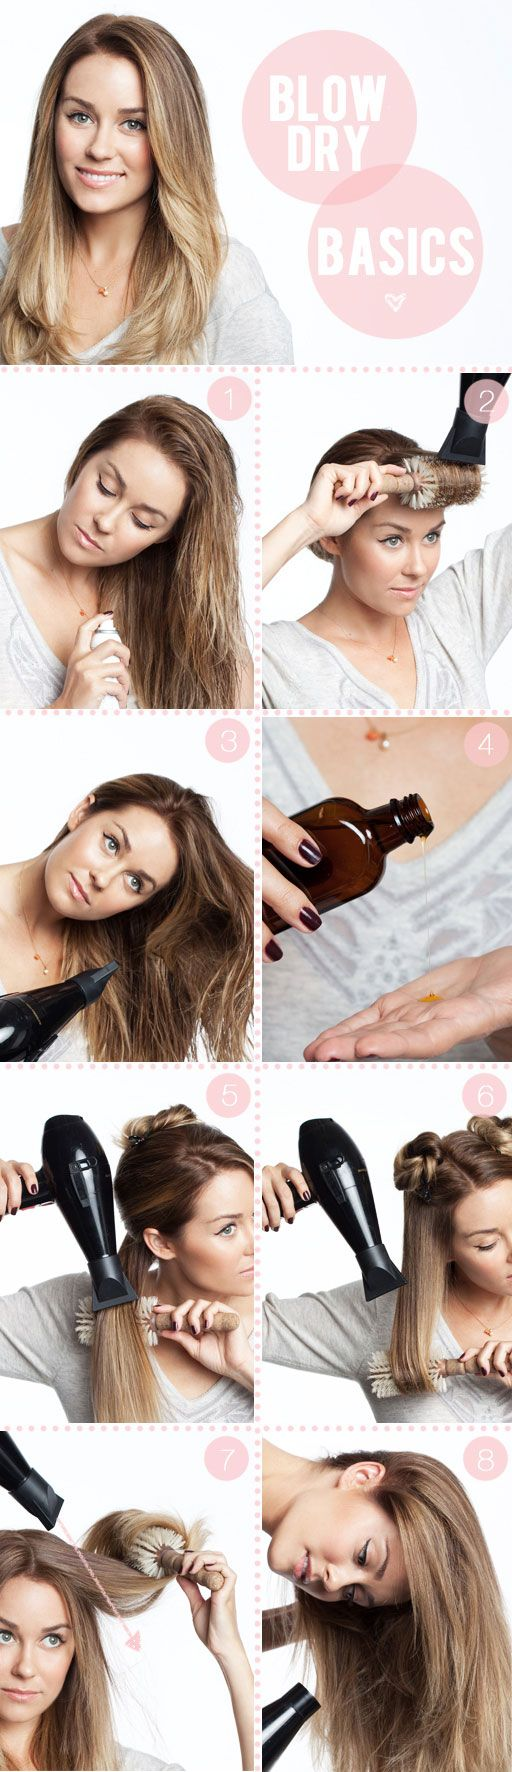 def going to try this!: Blowing Dry, Perfect Blowout, Long Hair, Dry Hair, Hair Style, Lauren Conrad, Thick Hair, Hair Tips, Dry Basic